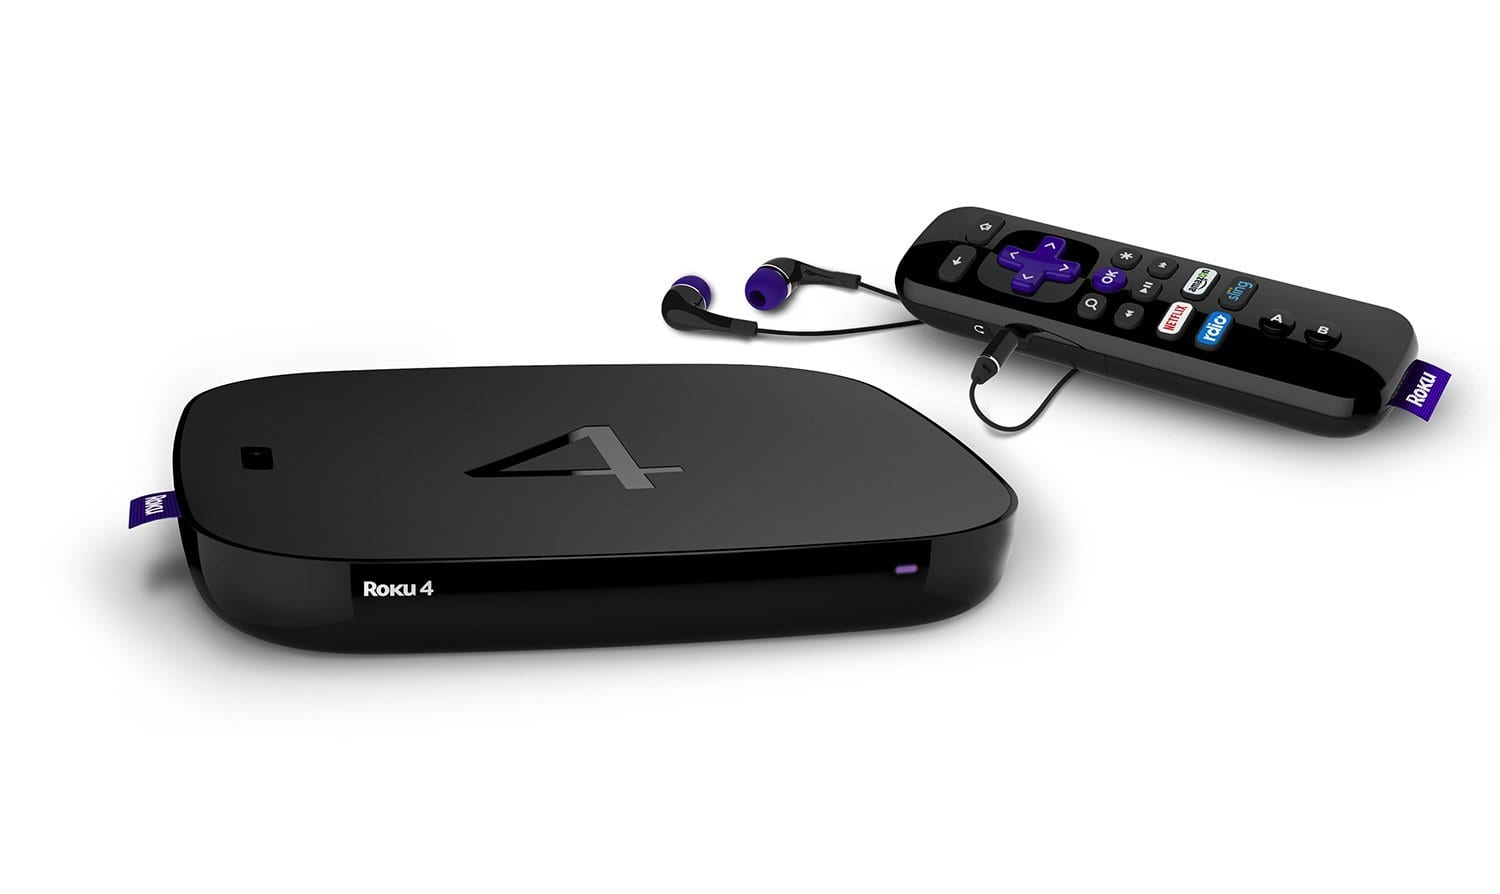 Frys Email Exclusive: Roku 4 UHD 4K Streaming Media Player  $100 + Free Store Pickup (w/ Email Code)